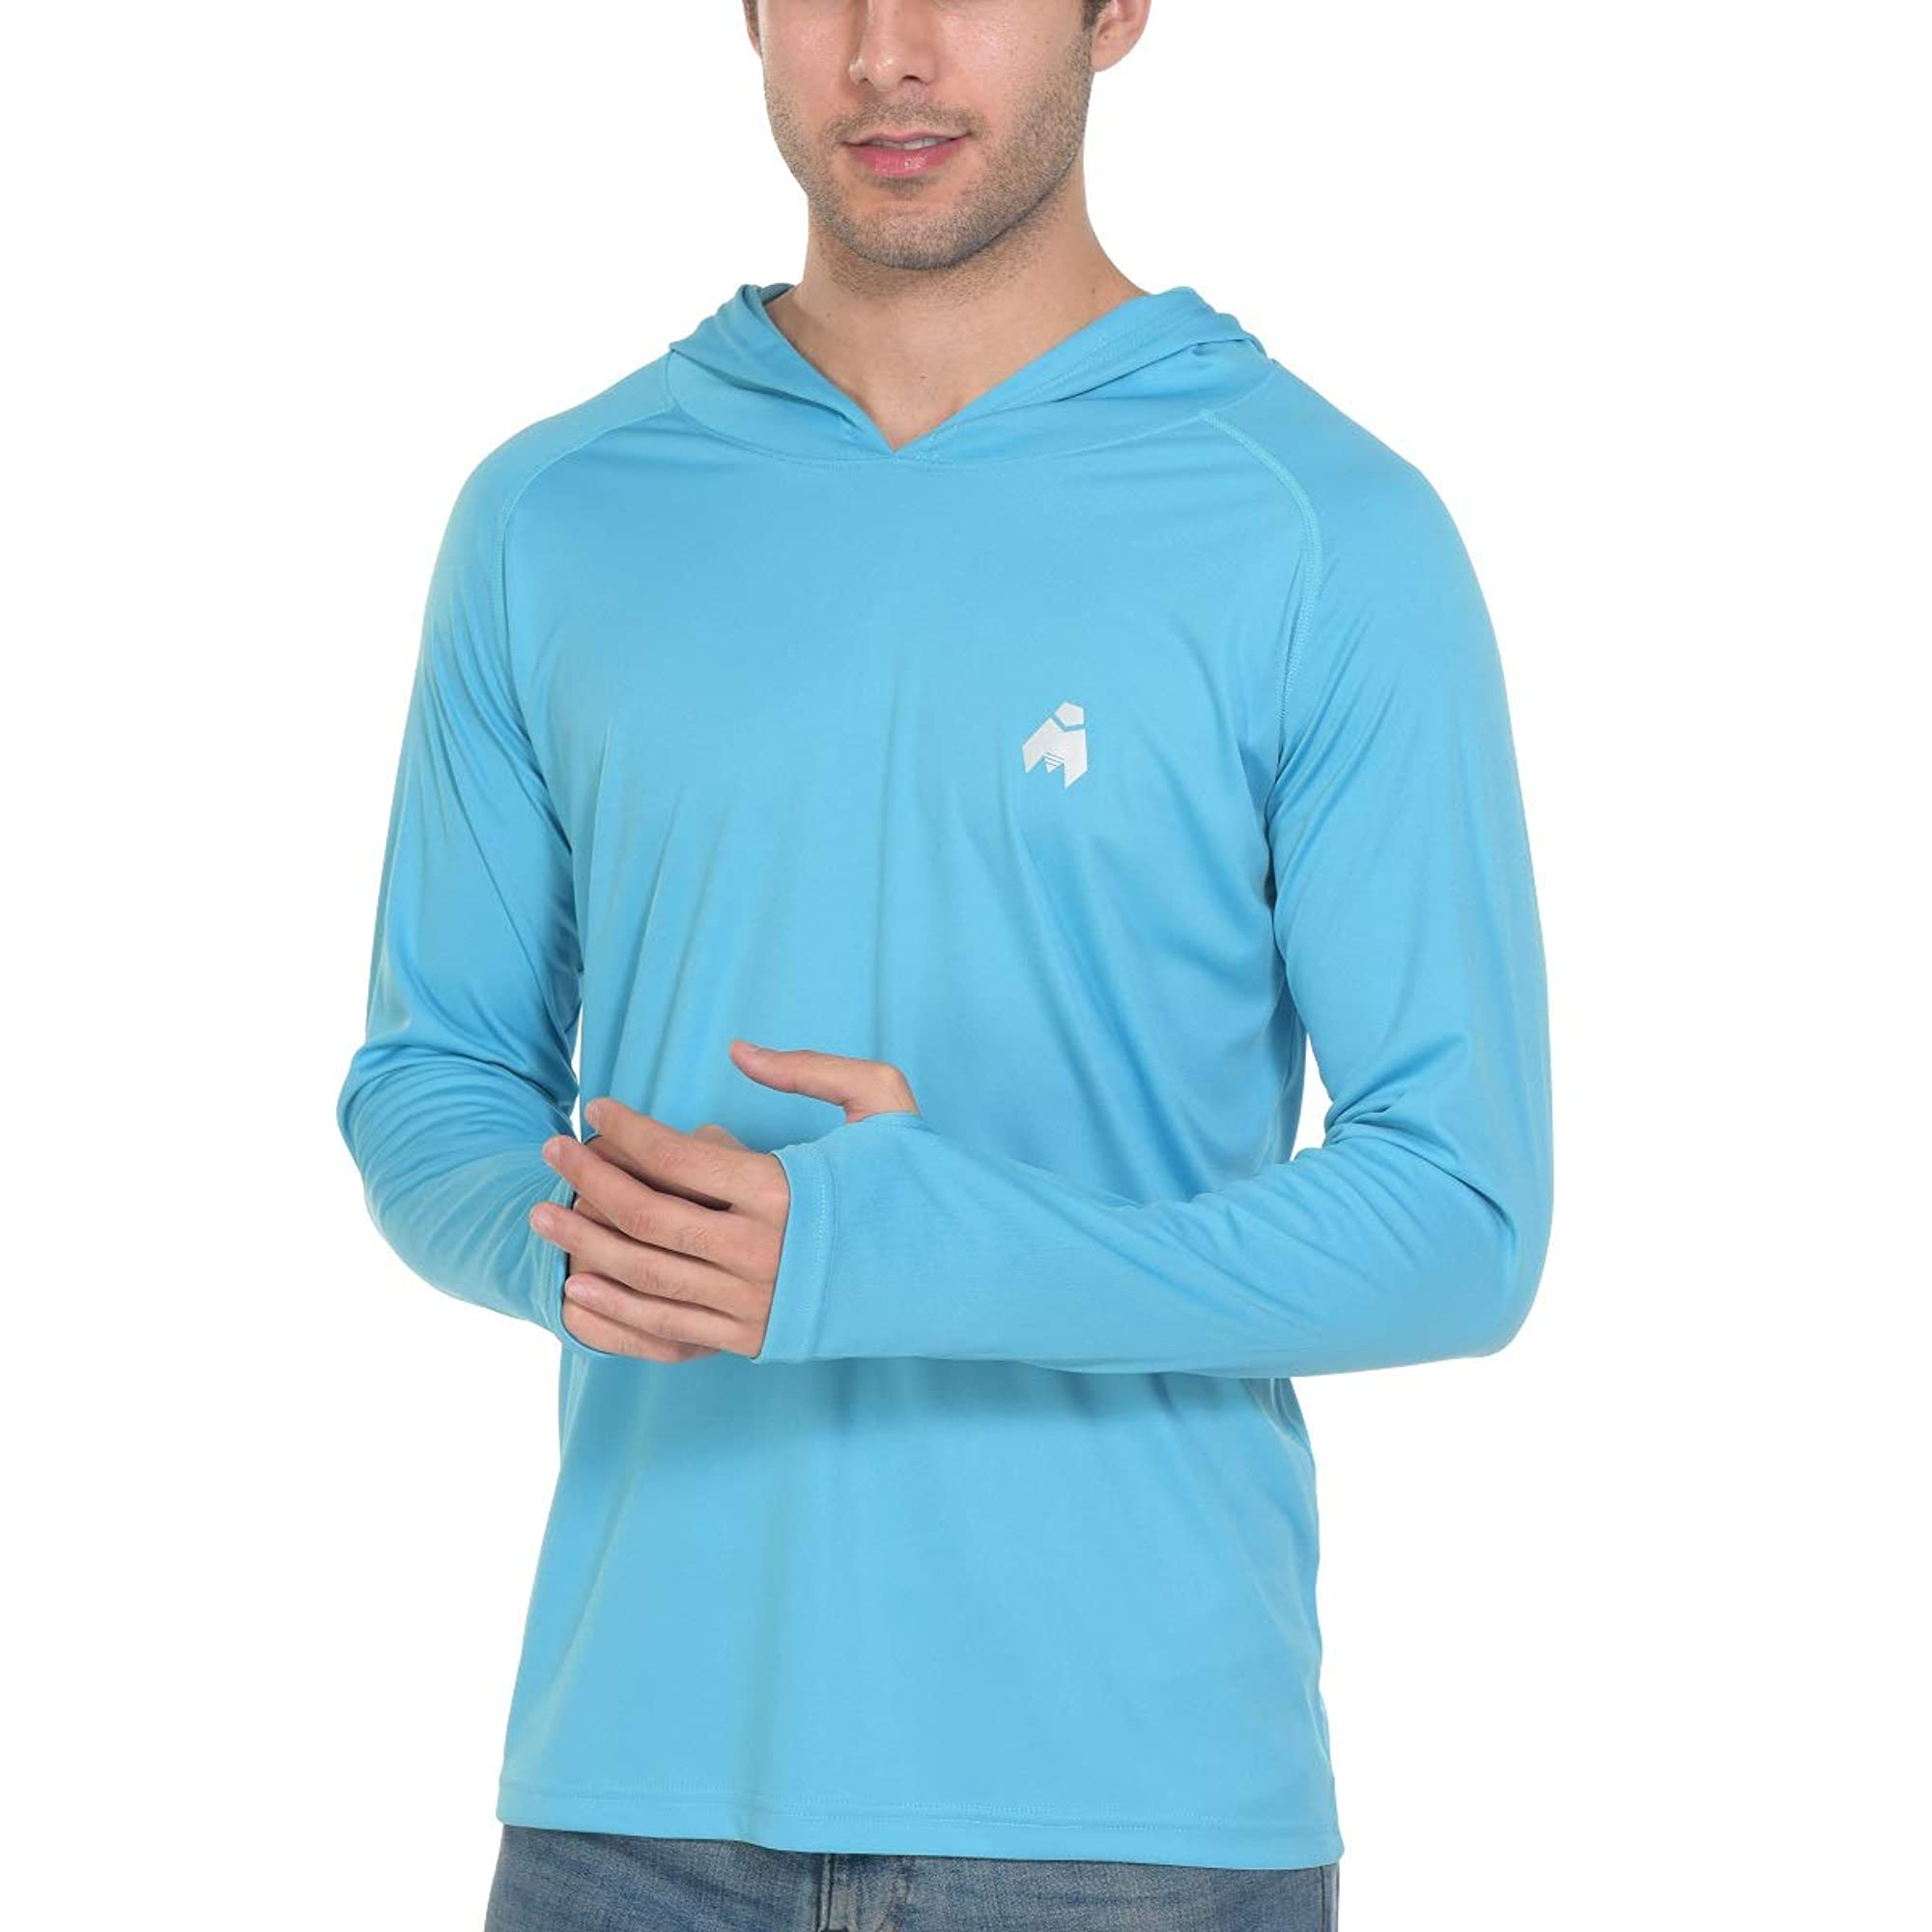 Long Sleeve T-Shirts With Upf 50+ Uv Protection